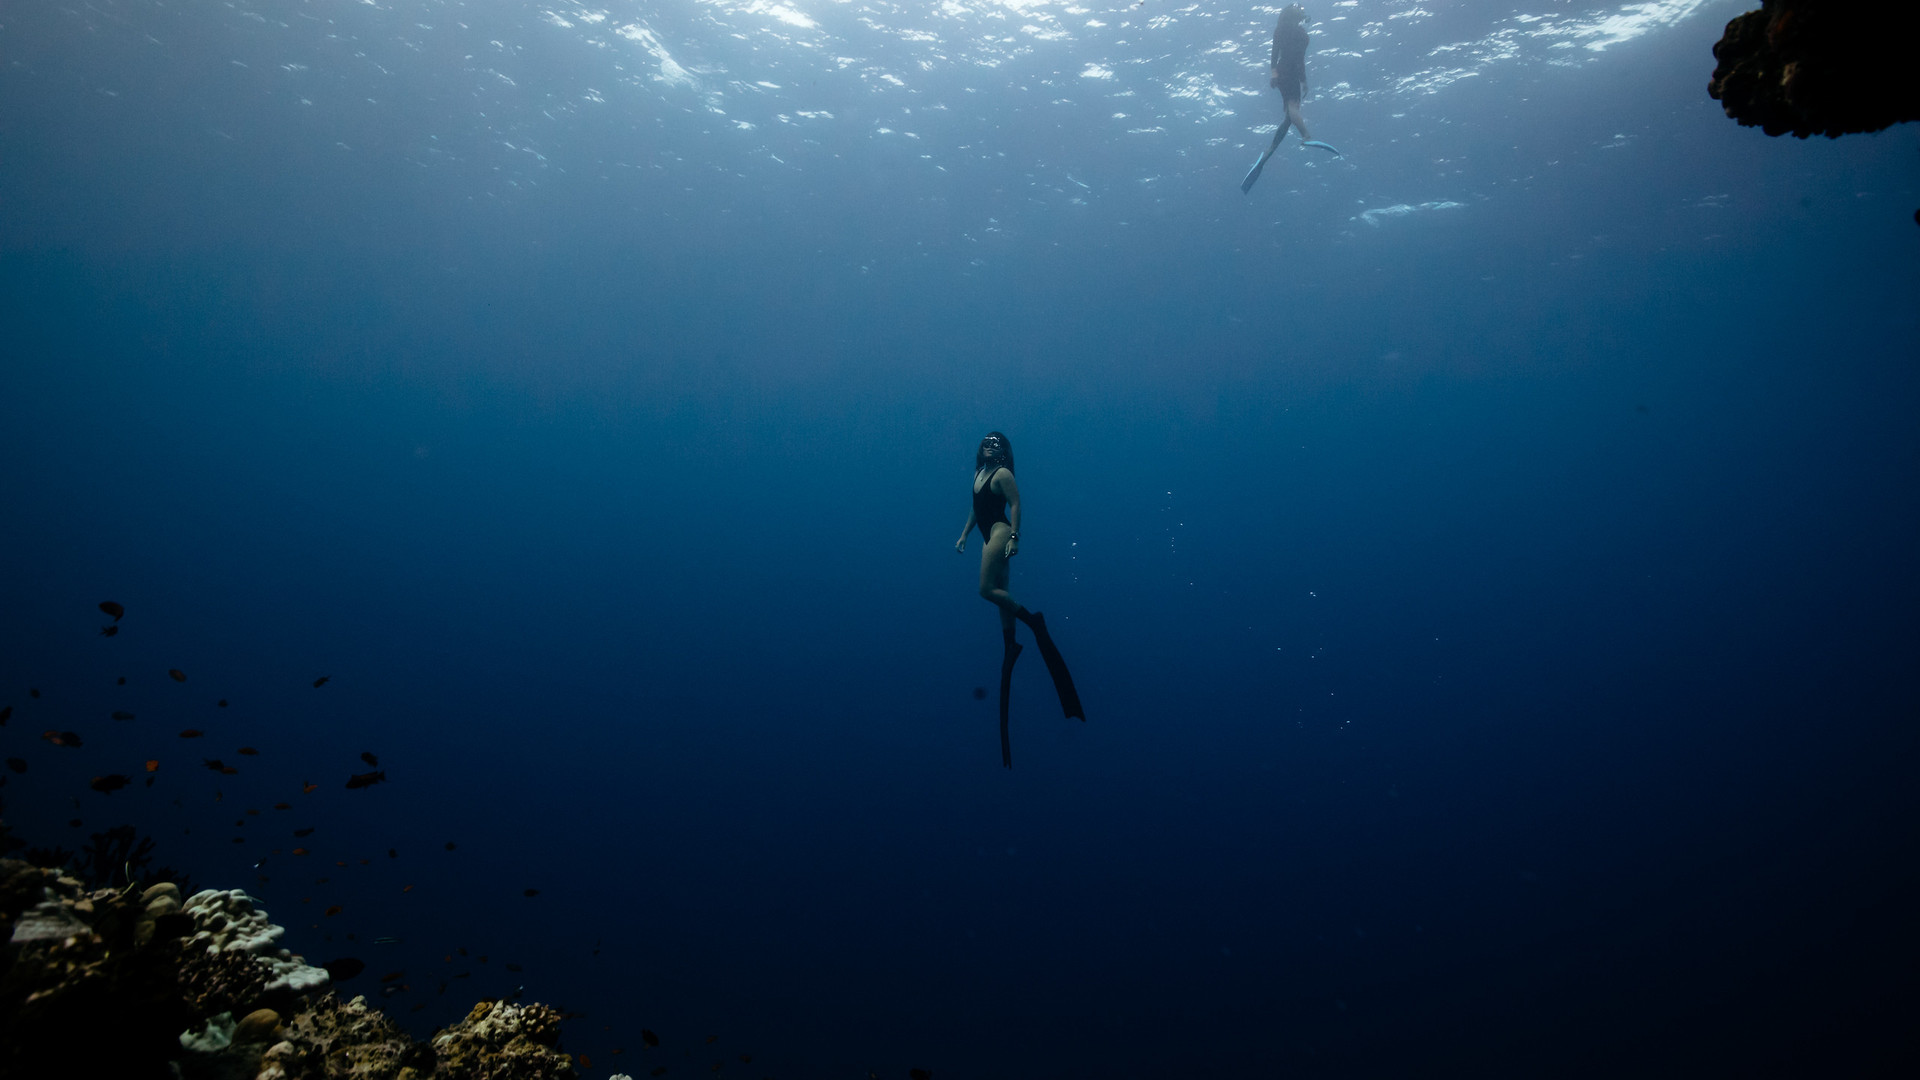 Freediving shoot with Matt Porteous